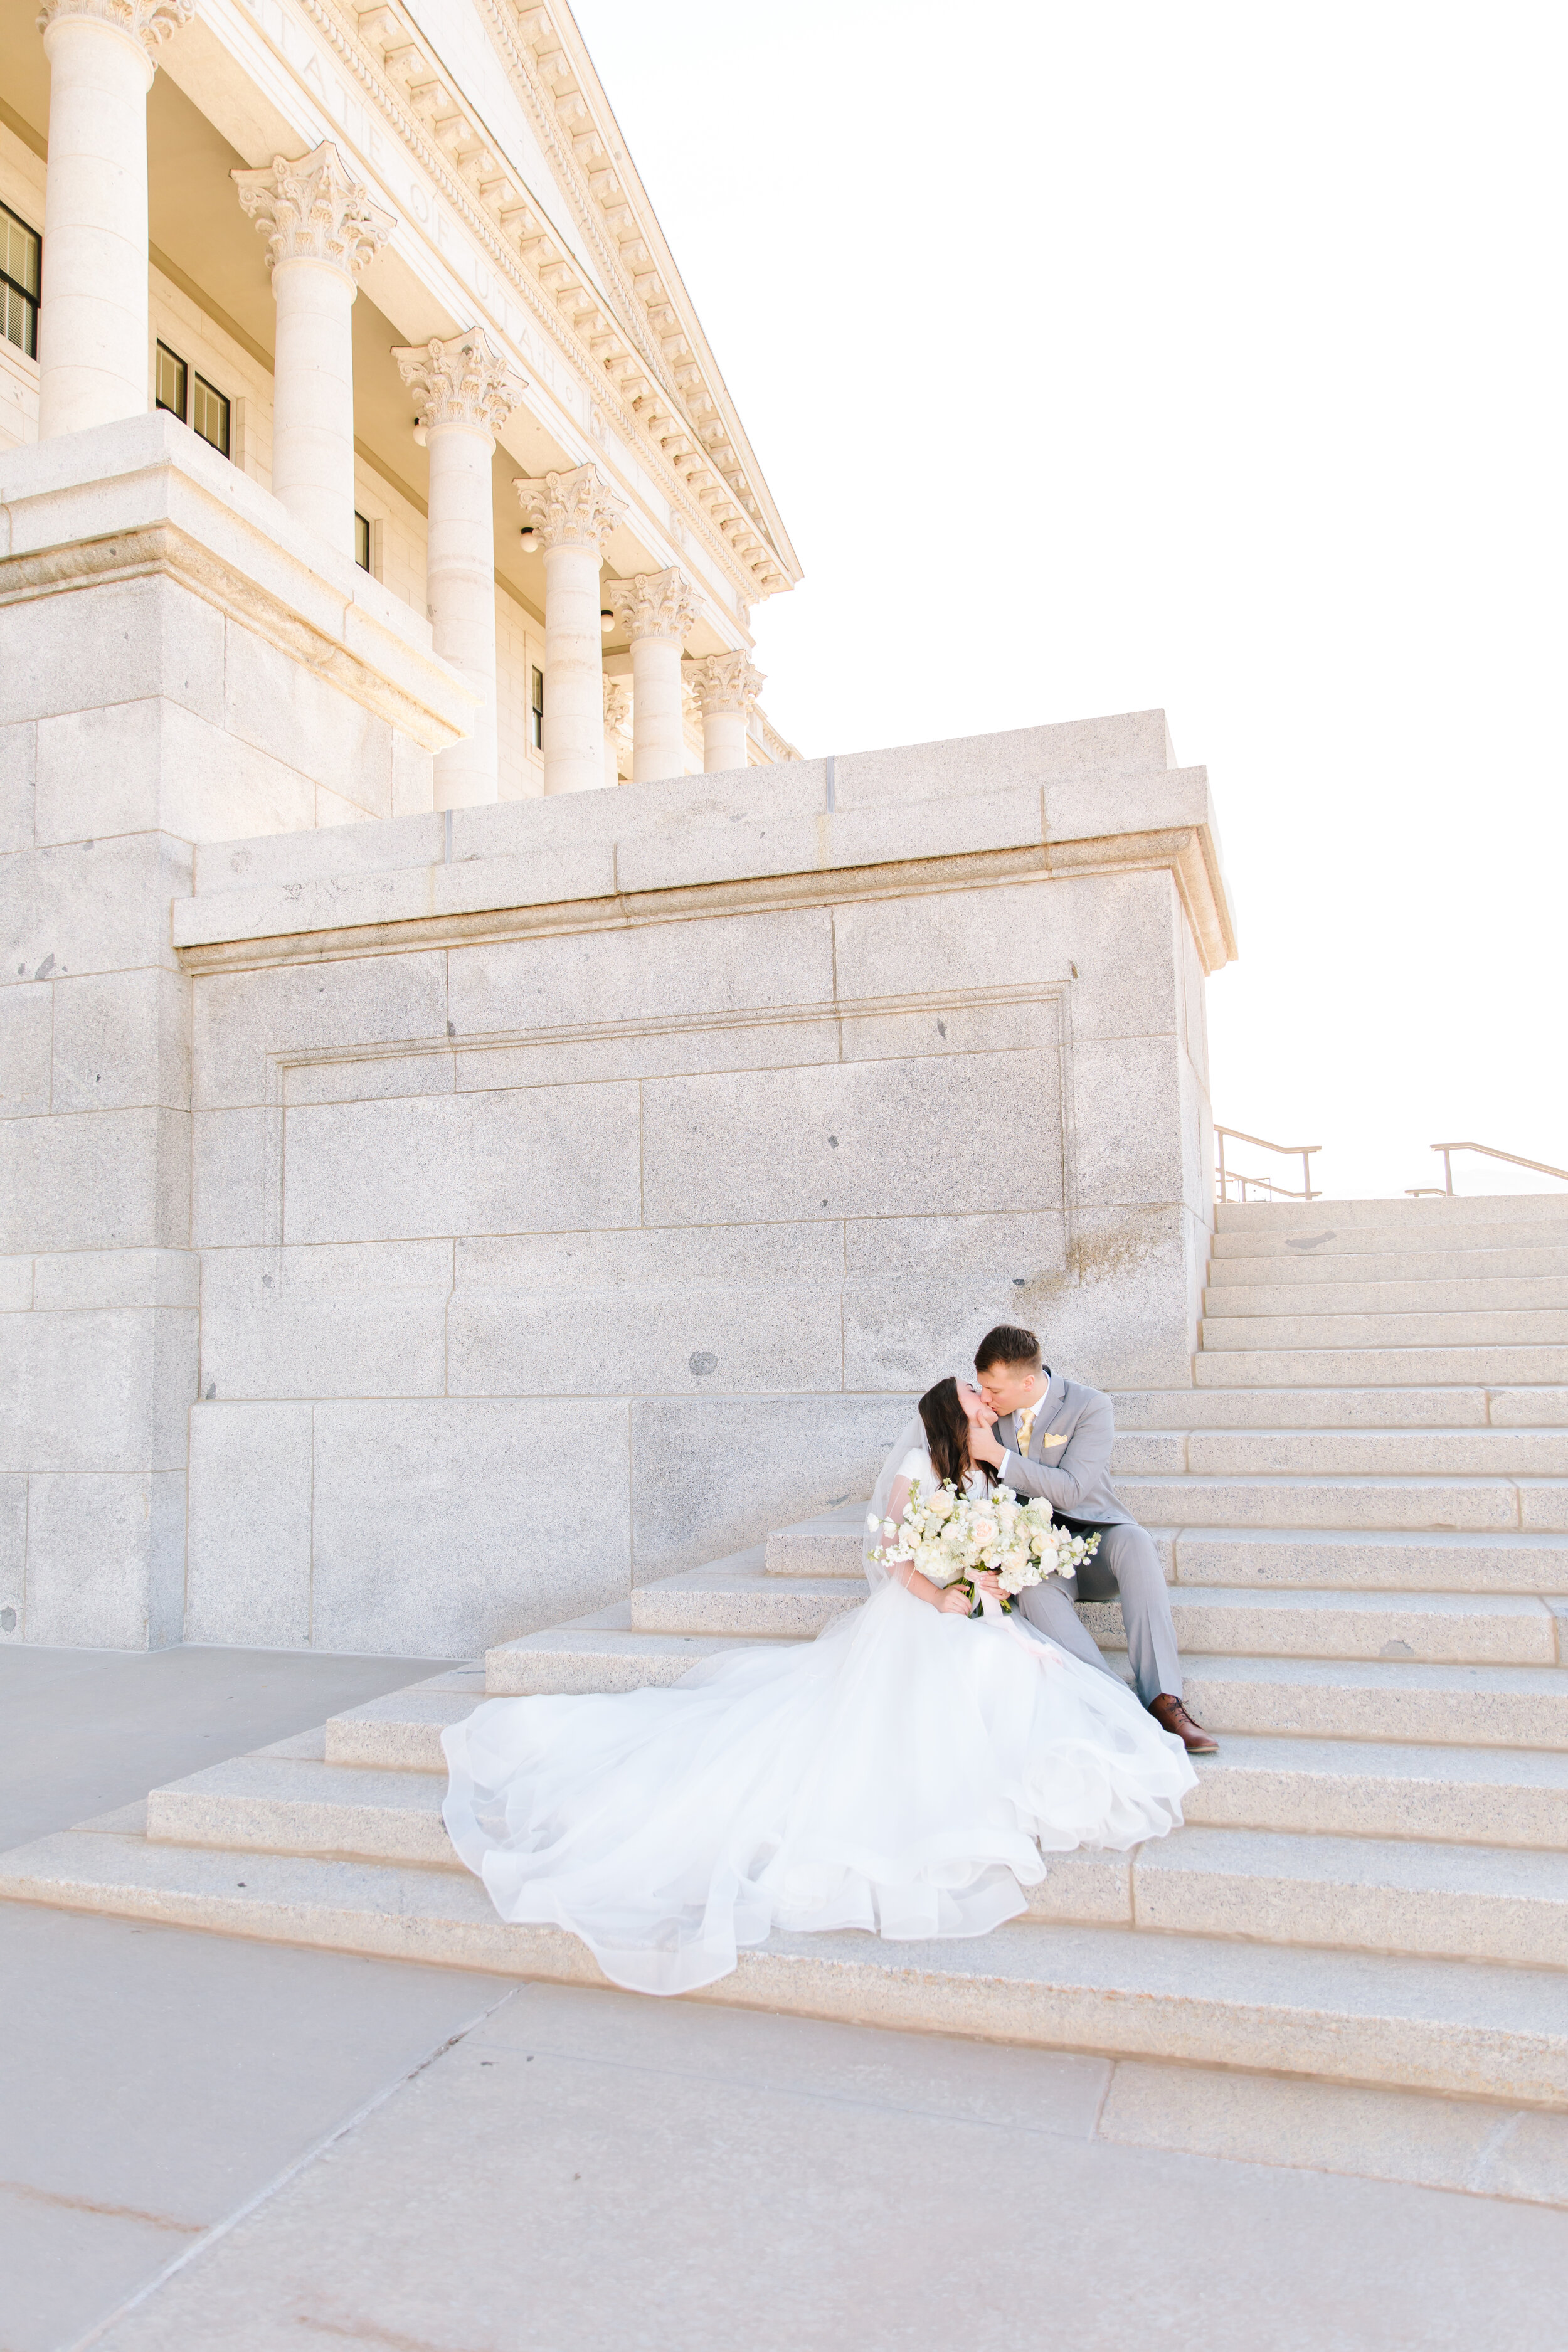 showing off the wedding dress skirt a line dress inspiration couple pose on the steps inspiration capital building background wedding picture goals photography inspiration early morning sunrise photo shoot beautiful architecture utah architecture formal wedding session couple   #formals #saltlakecity #capitalbuilding #lovebirds #couplegoals #bridal #weddinginspo #wedding #professional #photographer